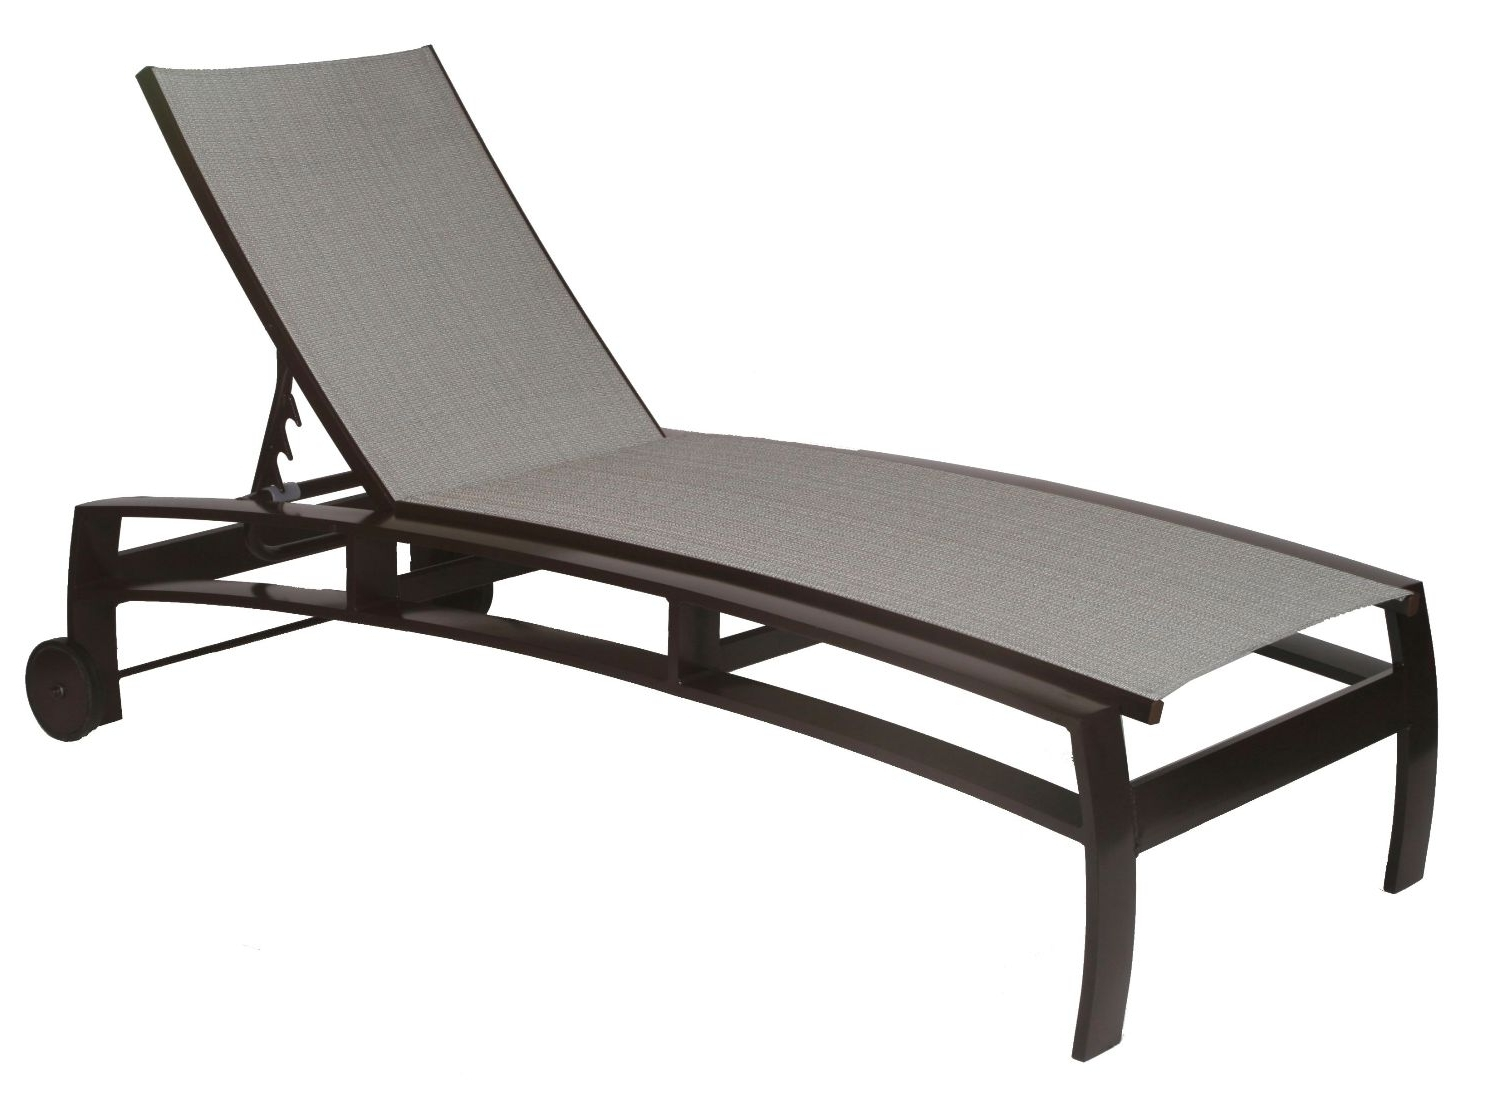 Mesh Lounge Chair Armframe – 438 Oalias Design Alberto Meda Intended For Fashionable Outdoor Mesh Chaise Lounge Chairs (View 7 of 15)